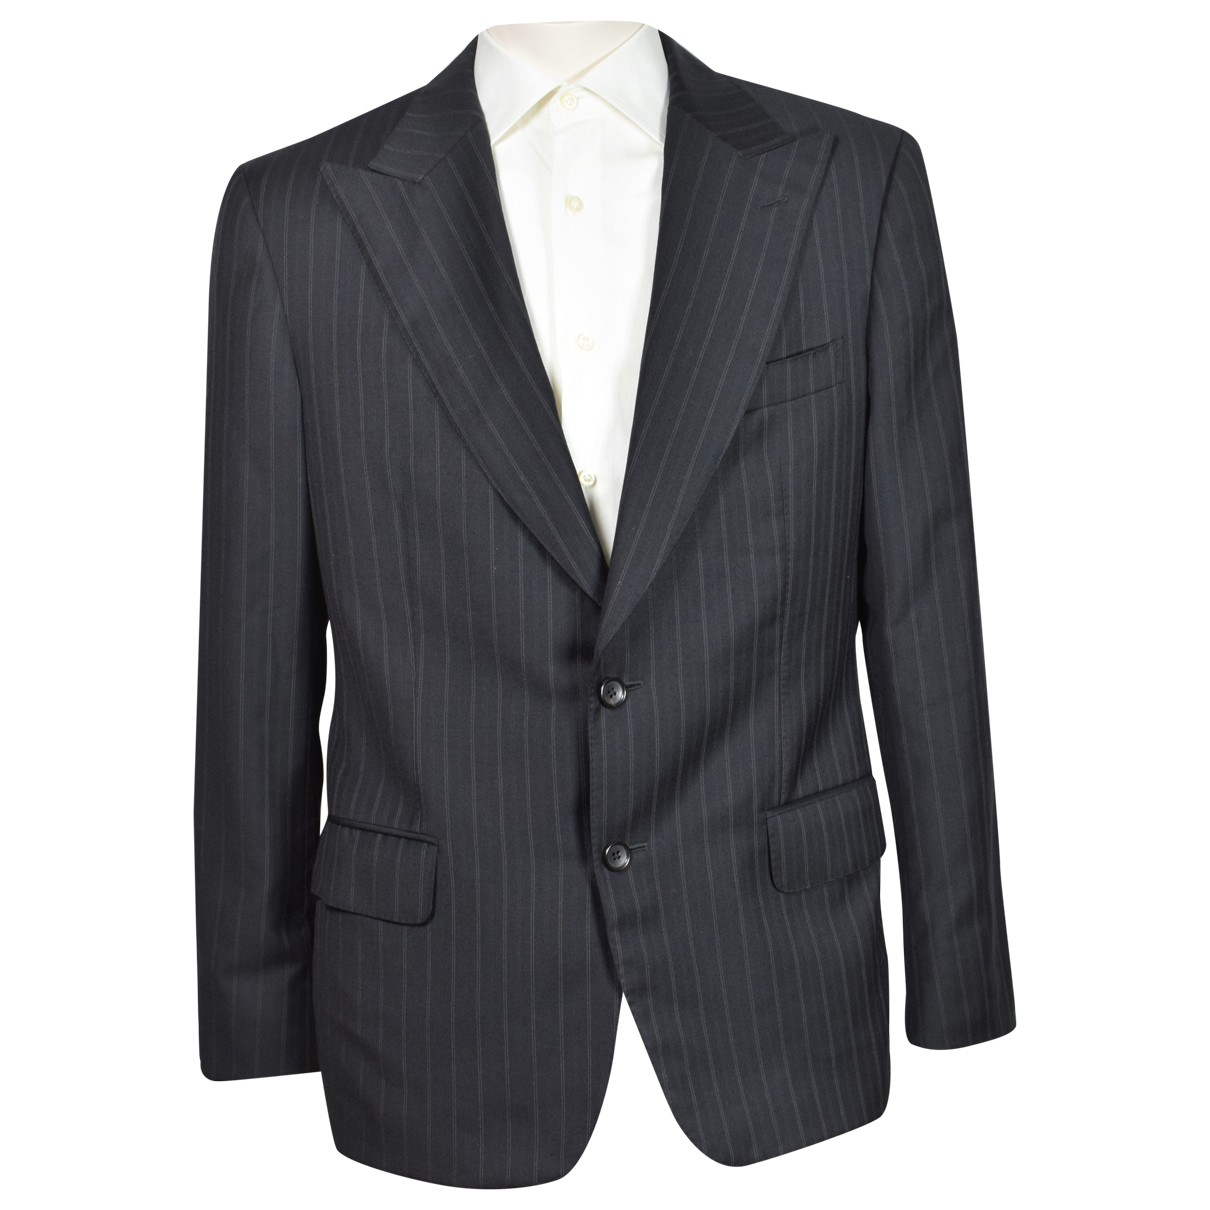 Gucci N Black Wool Suits for Men 50 IT